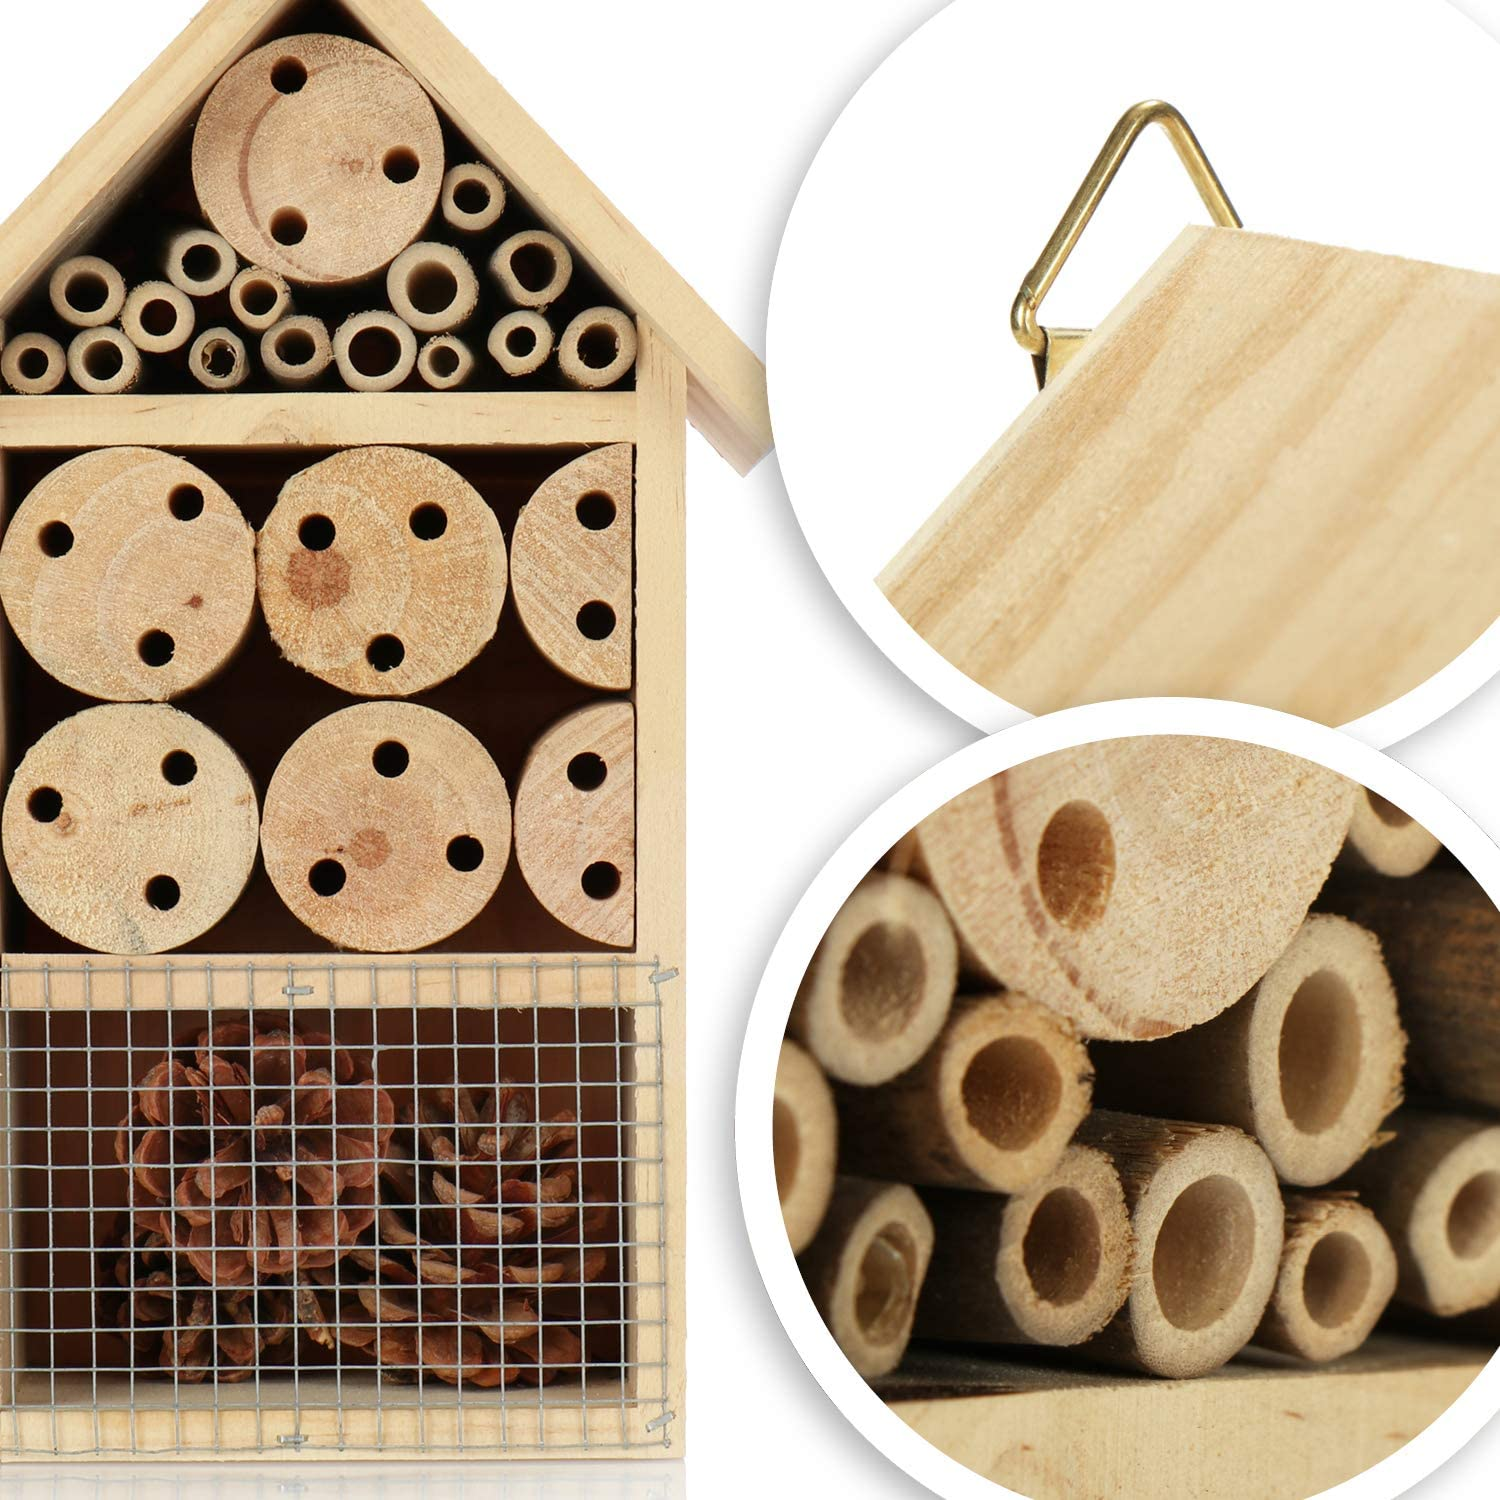 ladybirds Insect house to hang com-four/® Insect hotel made of wood Bee hotel for flying insects 25cm butterflies and flies